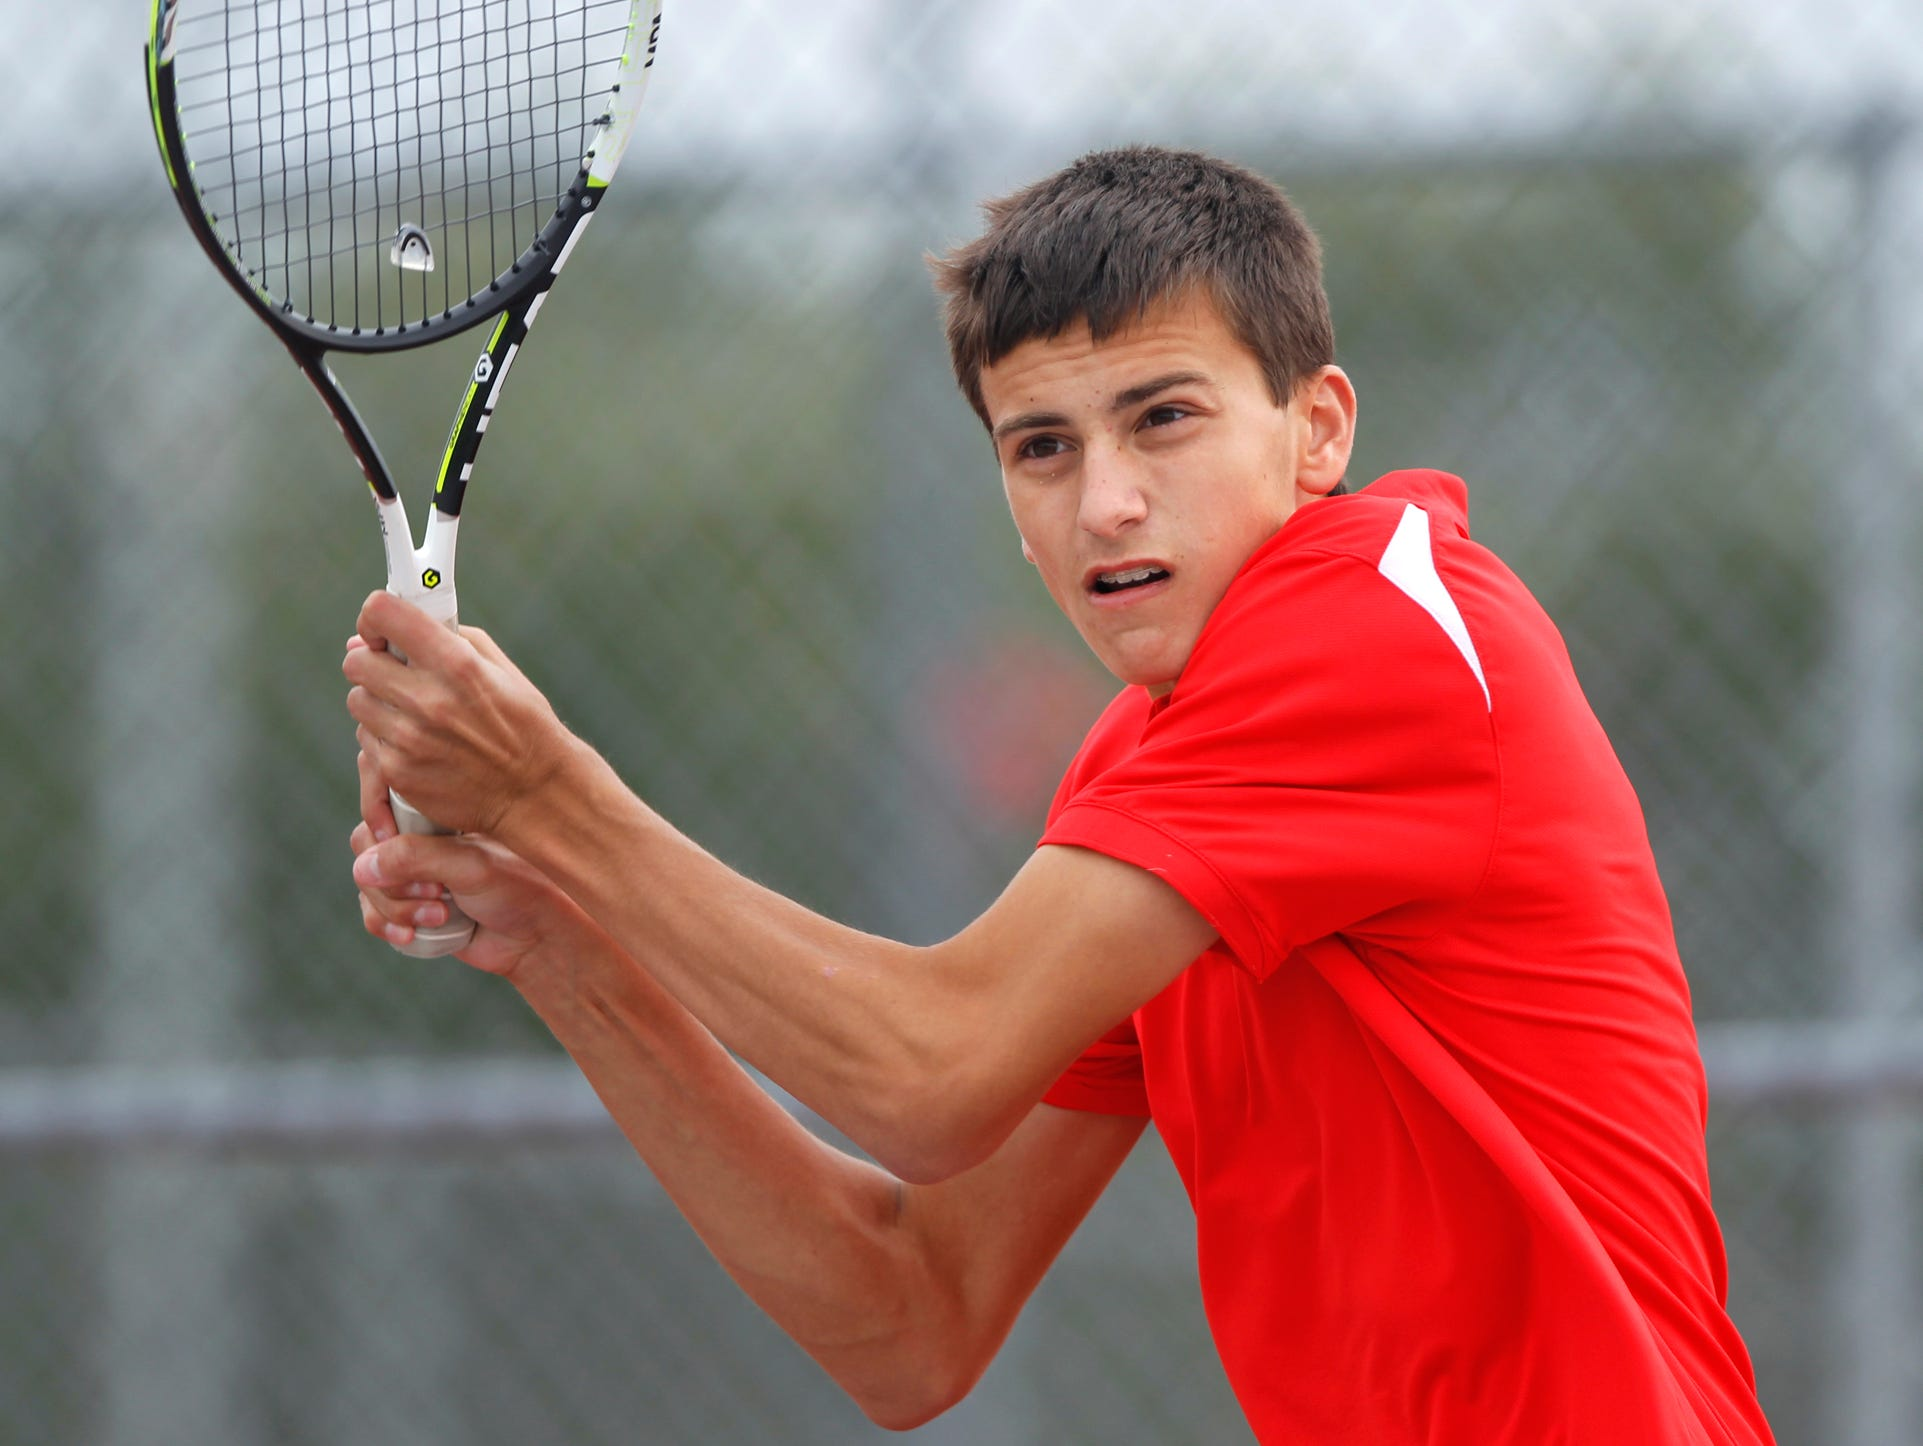 West Lafayette's Ryan Hollis watches his return against Lafayette Jeff's Jack Moulton in No. 1 singles during the boys tennis sectional championship Friday, October 2, 2015, at Cumberland Courts in West Lafayette.